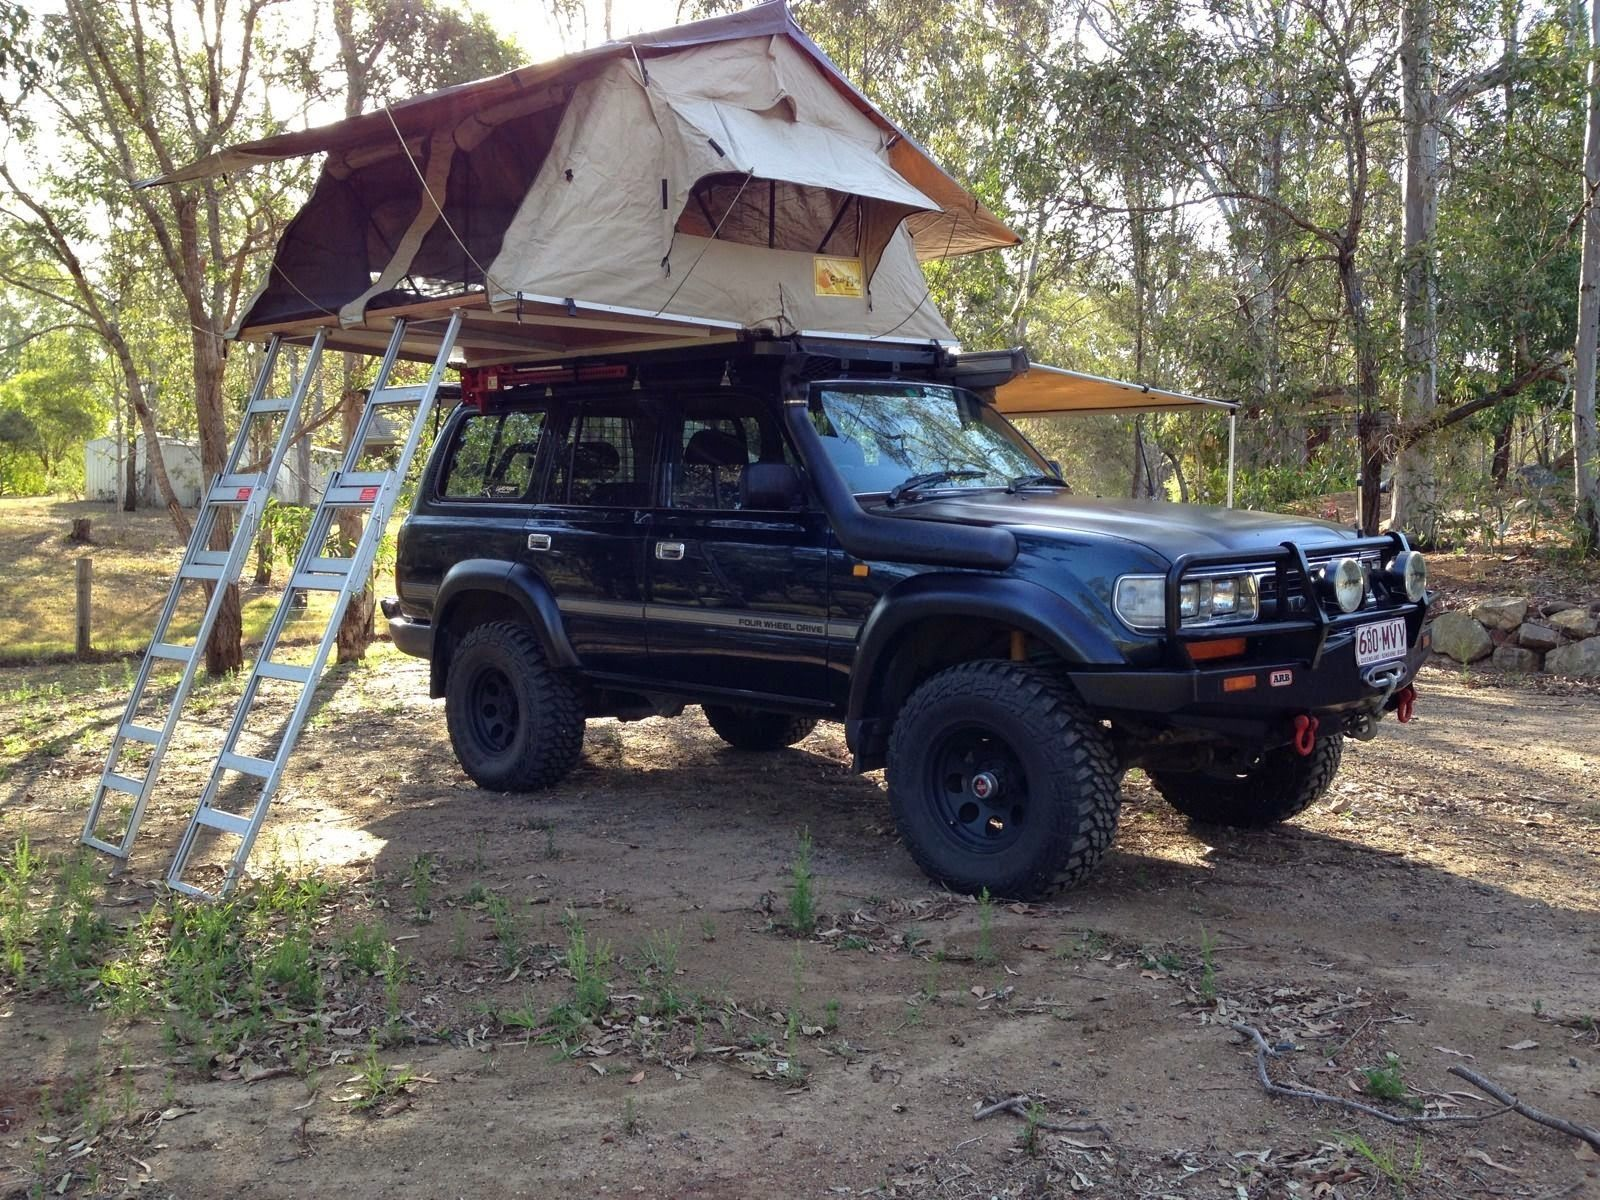 1992 Toyota Landcruiser GXL 80 Series with Camper | 4x4 ...